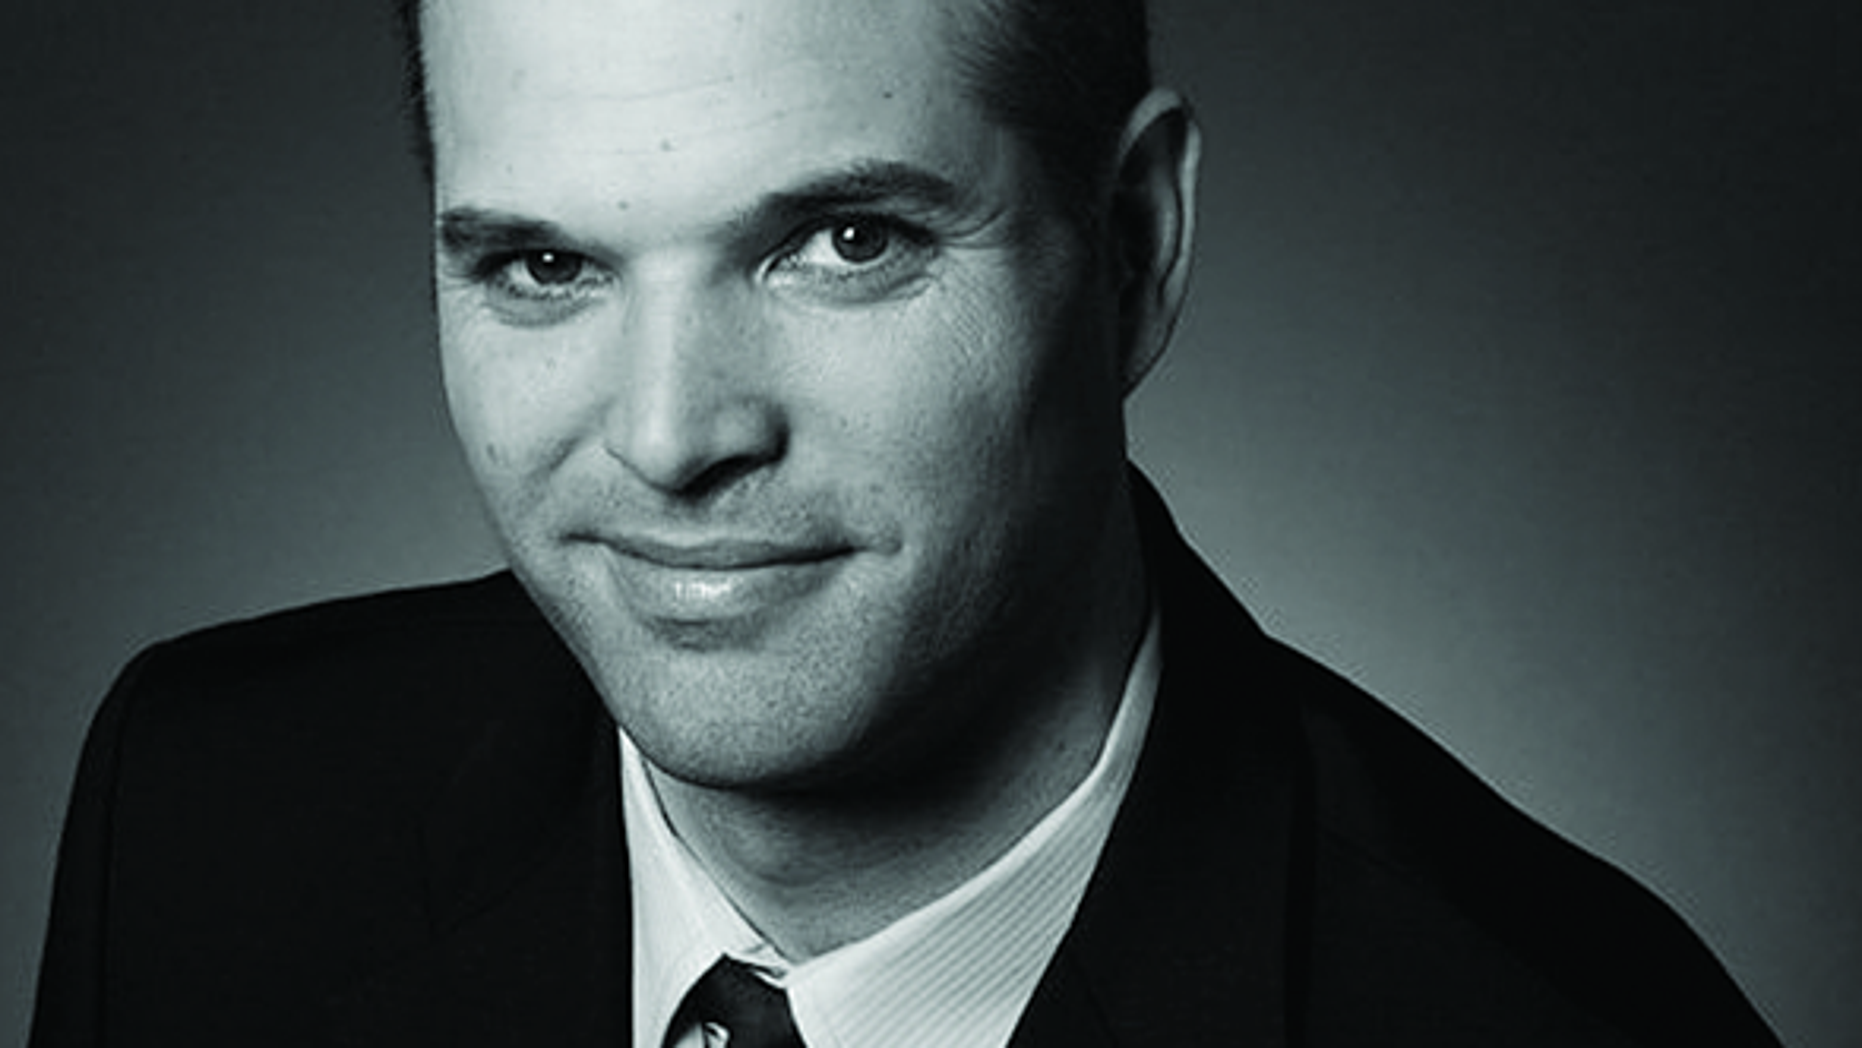 Matt Taibbi, a writer for Rolling Stone magazine, is facing backlash over a 2000 memoir he co-authored.